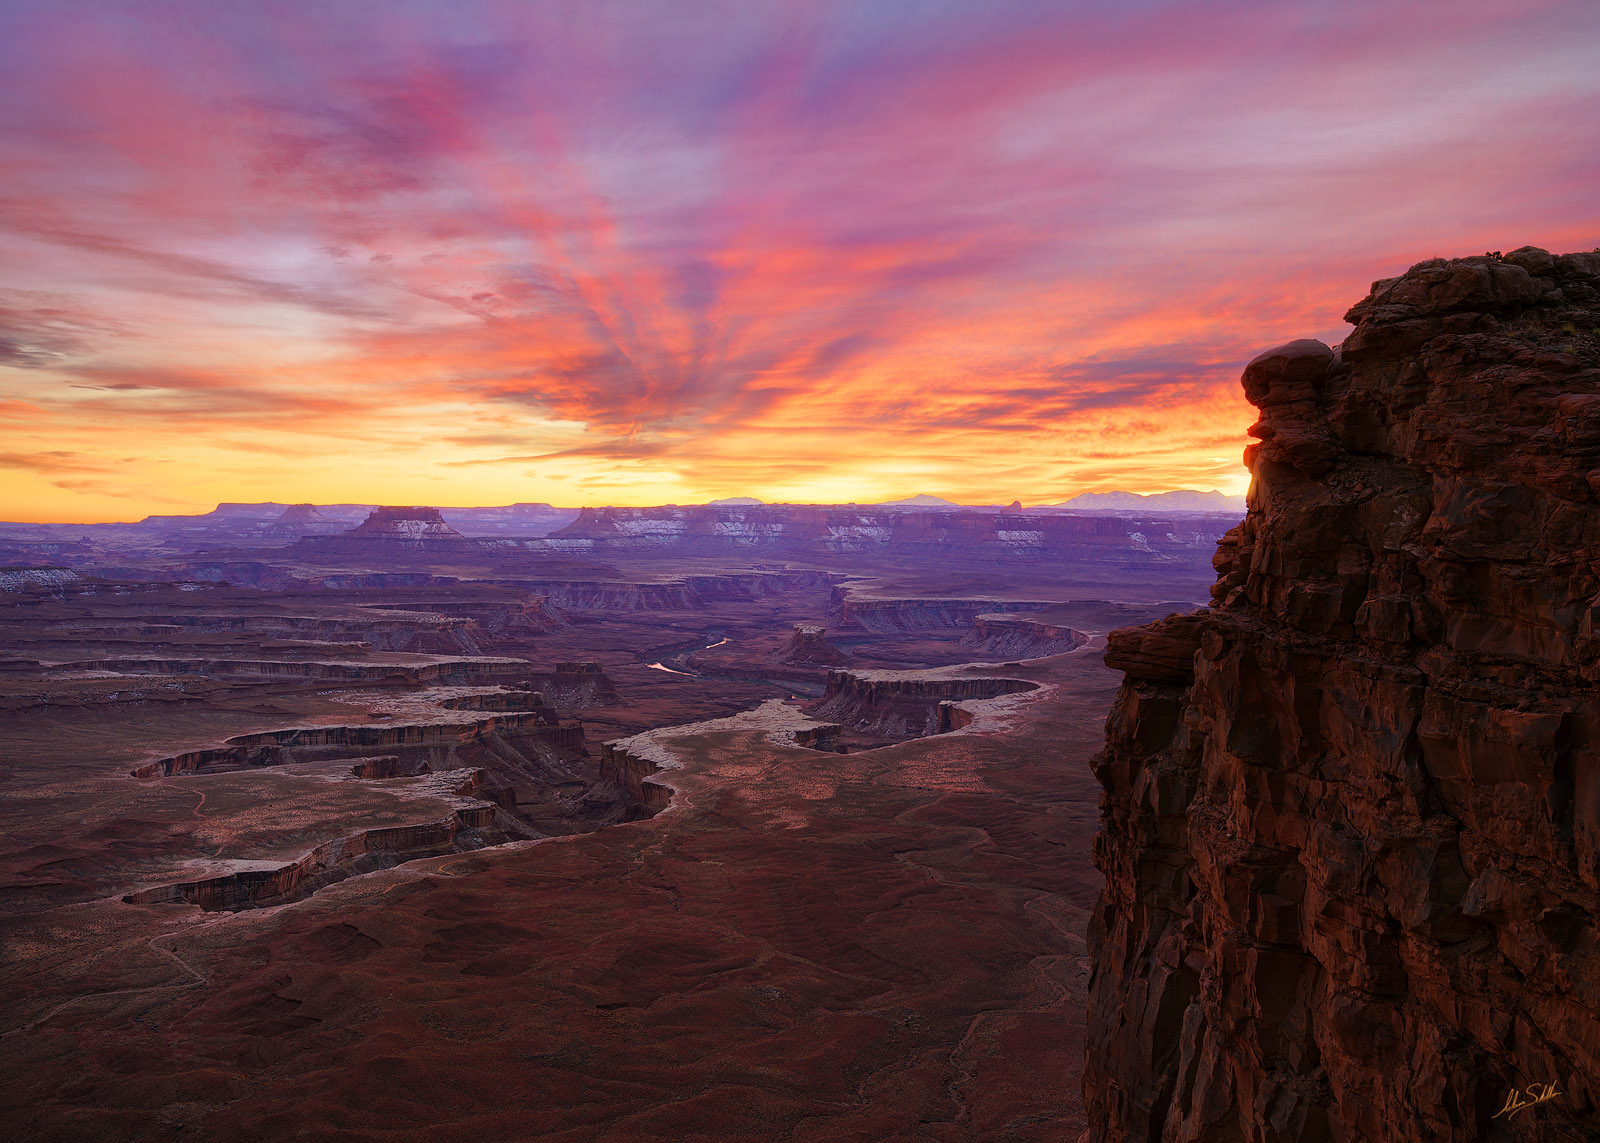 Canyonlands, Colorado Plateau, Green River Overlook, Island in the Sky, Moab, National Park, People, Person, Southwest, Sunset, photo